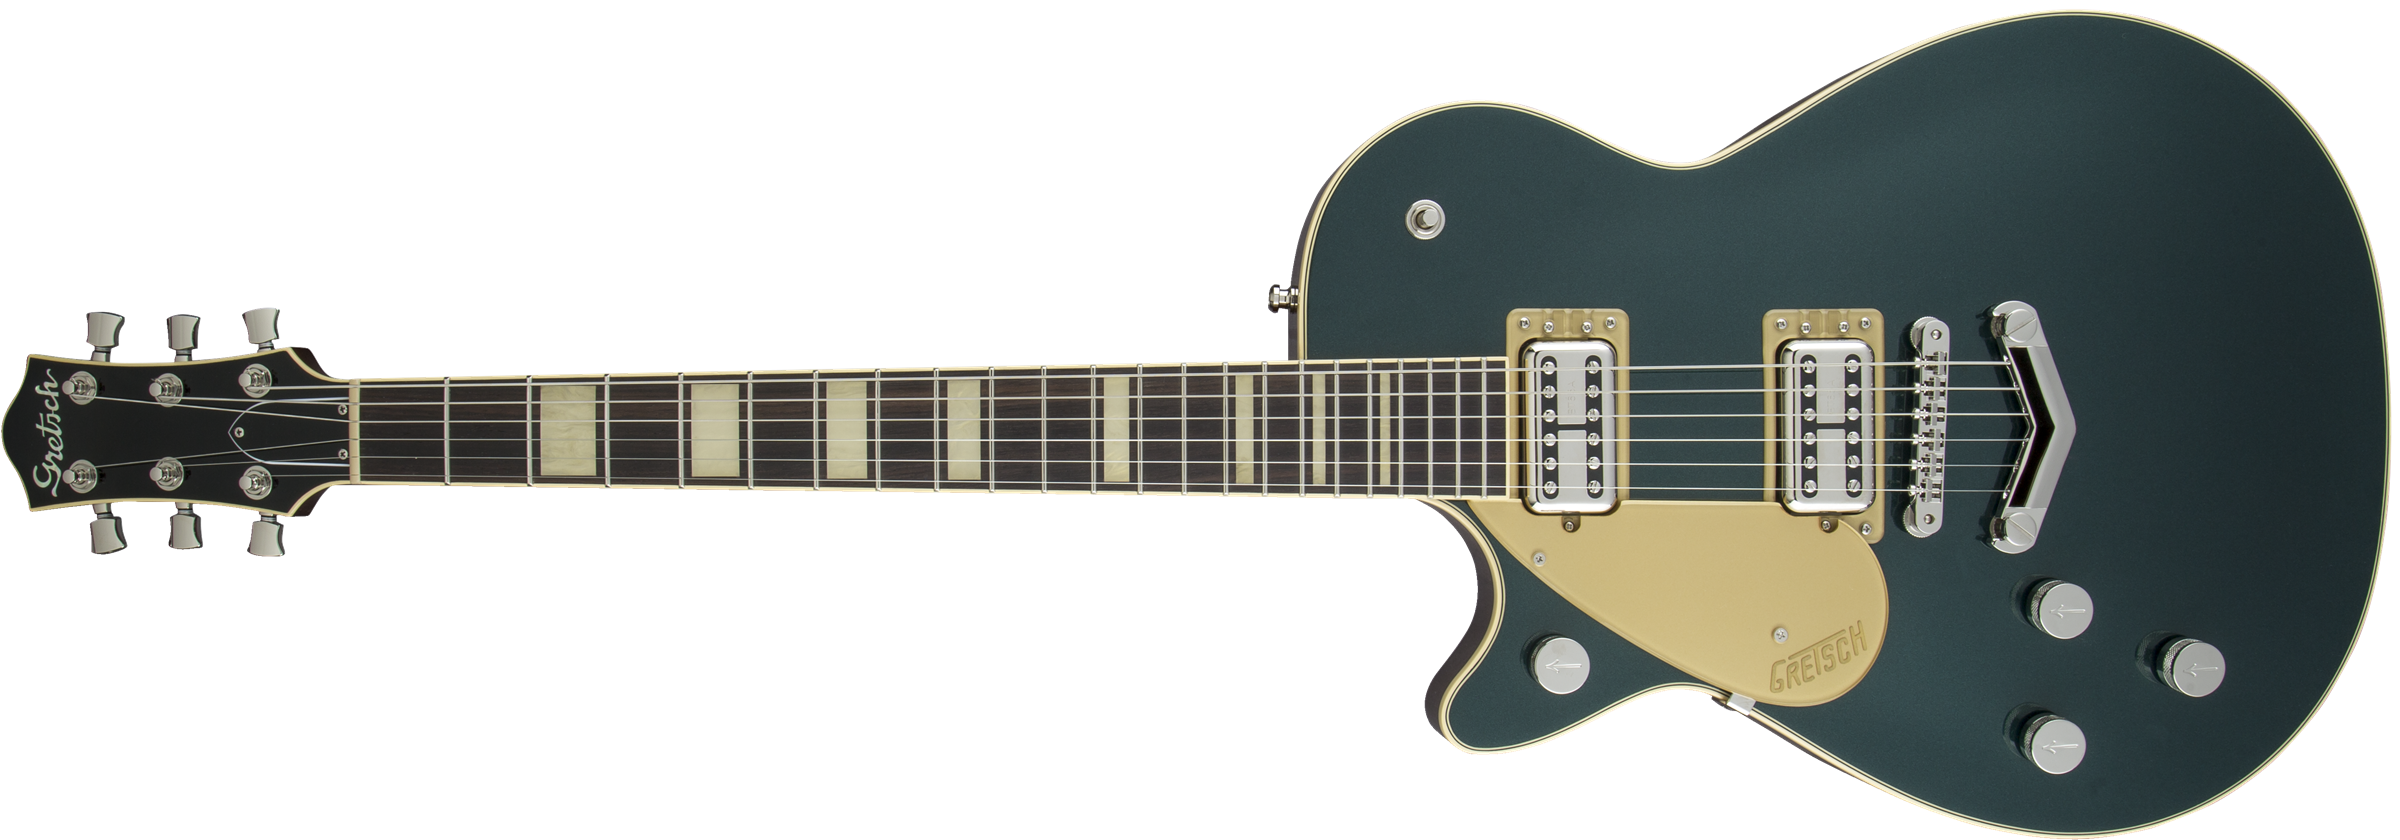 GRETSCH-G6228LH-Players-Edition-Jet-BT-with-V-Stoptail-Left-Handed-Rosewood-Fingerboard-Cadillac-Green-sku-571001490